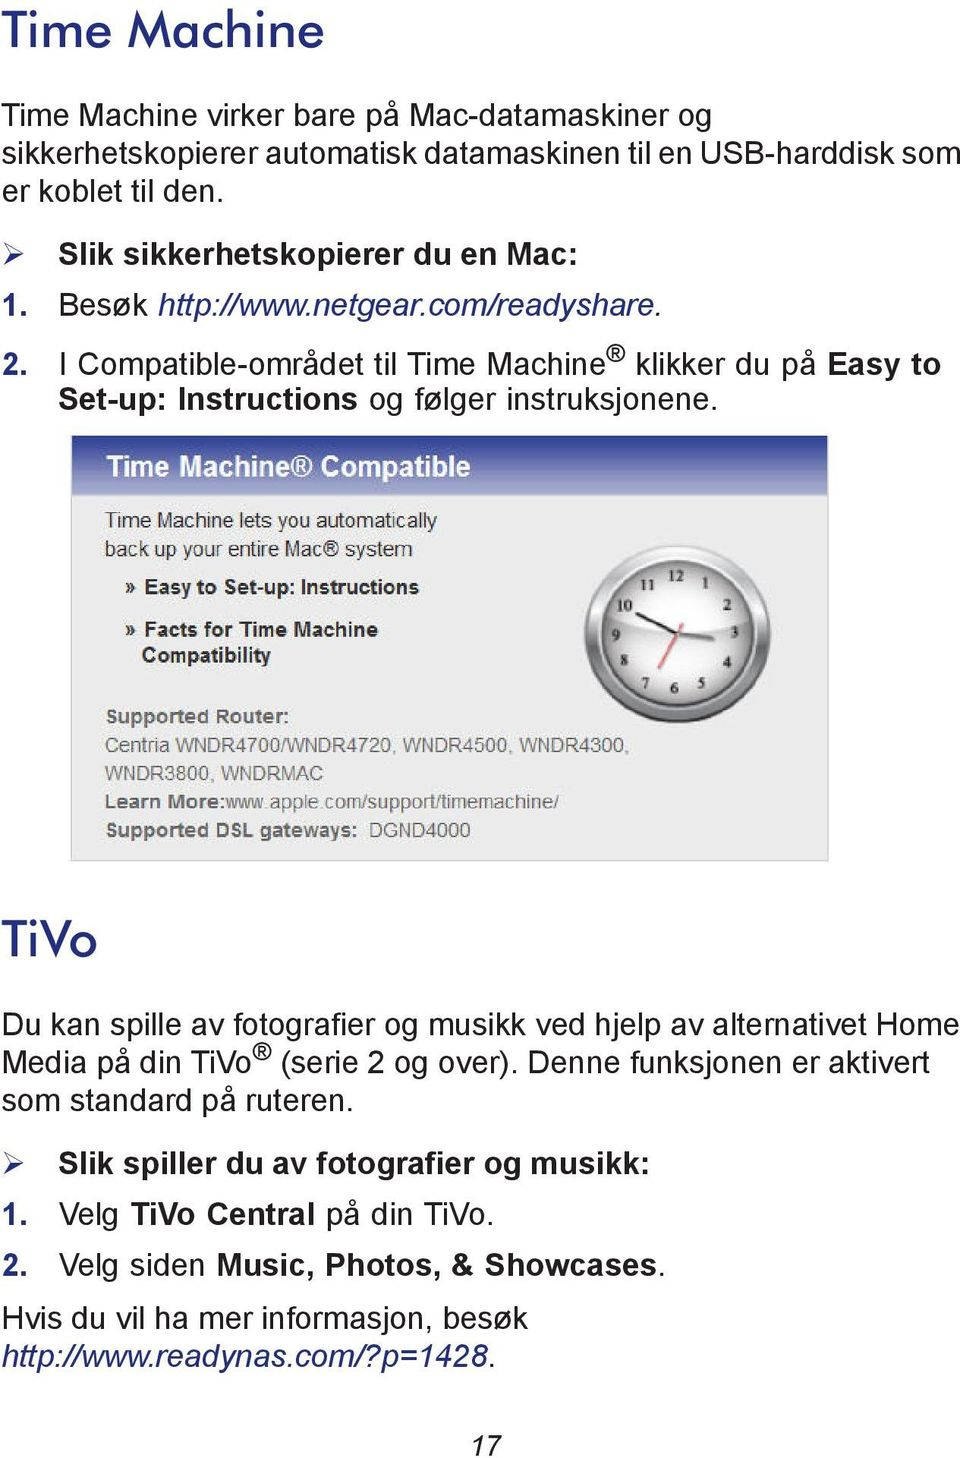 I Compatible-området til Time Machine klikker du på Easy to Set-up: Instructions og følger instruksjonene.